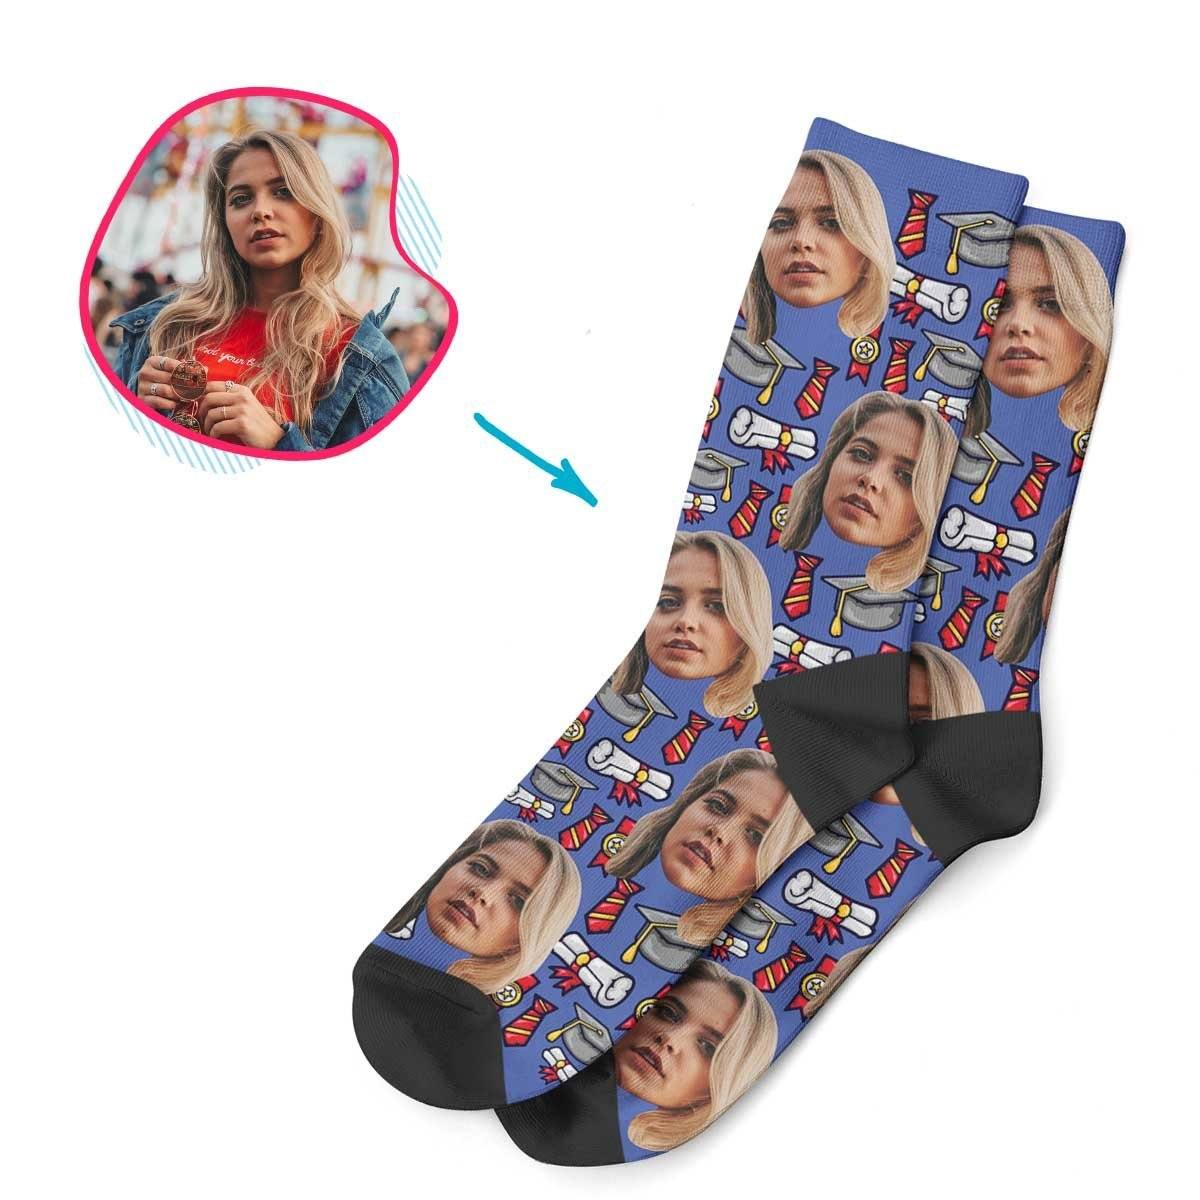 Darkblue Students & Graduates personalized socks with photo of face printed on them